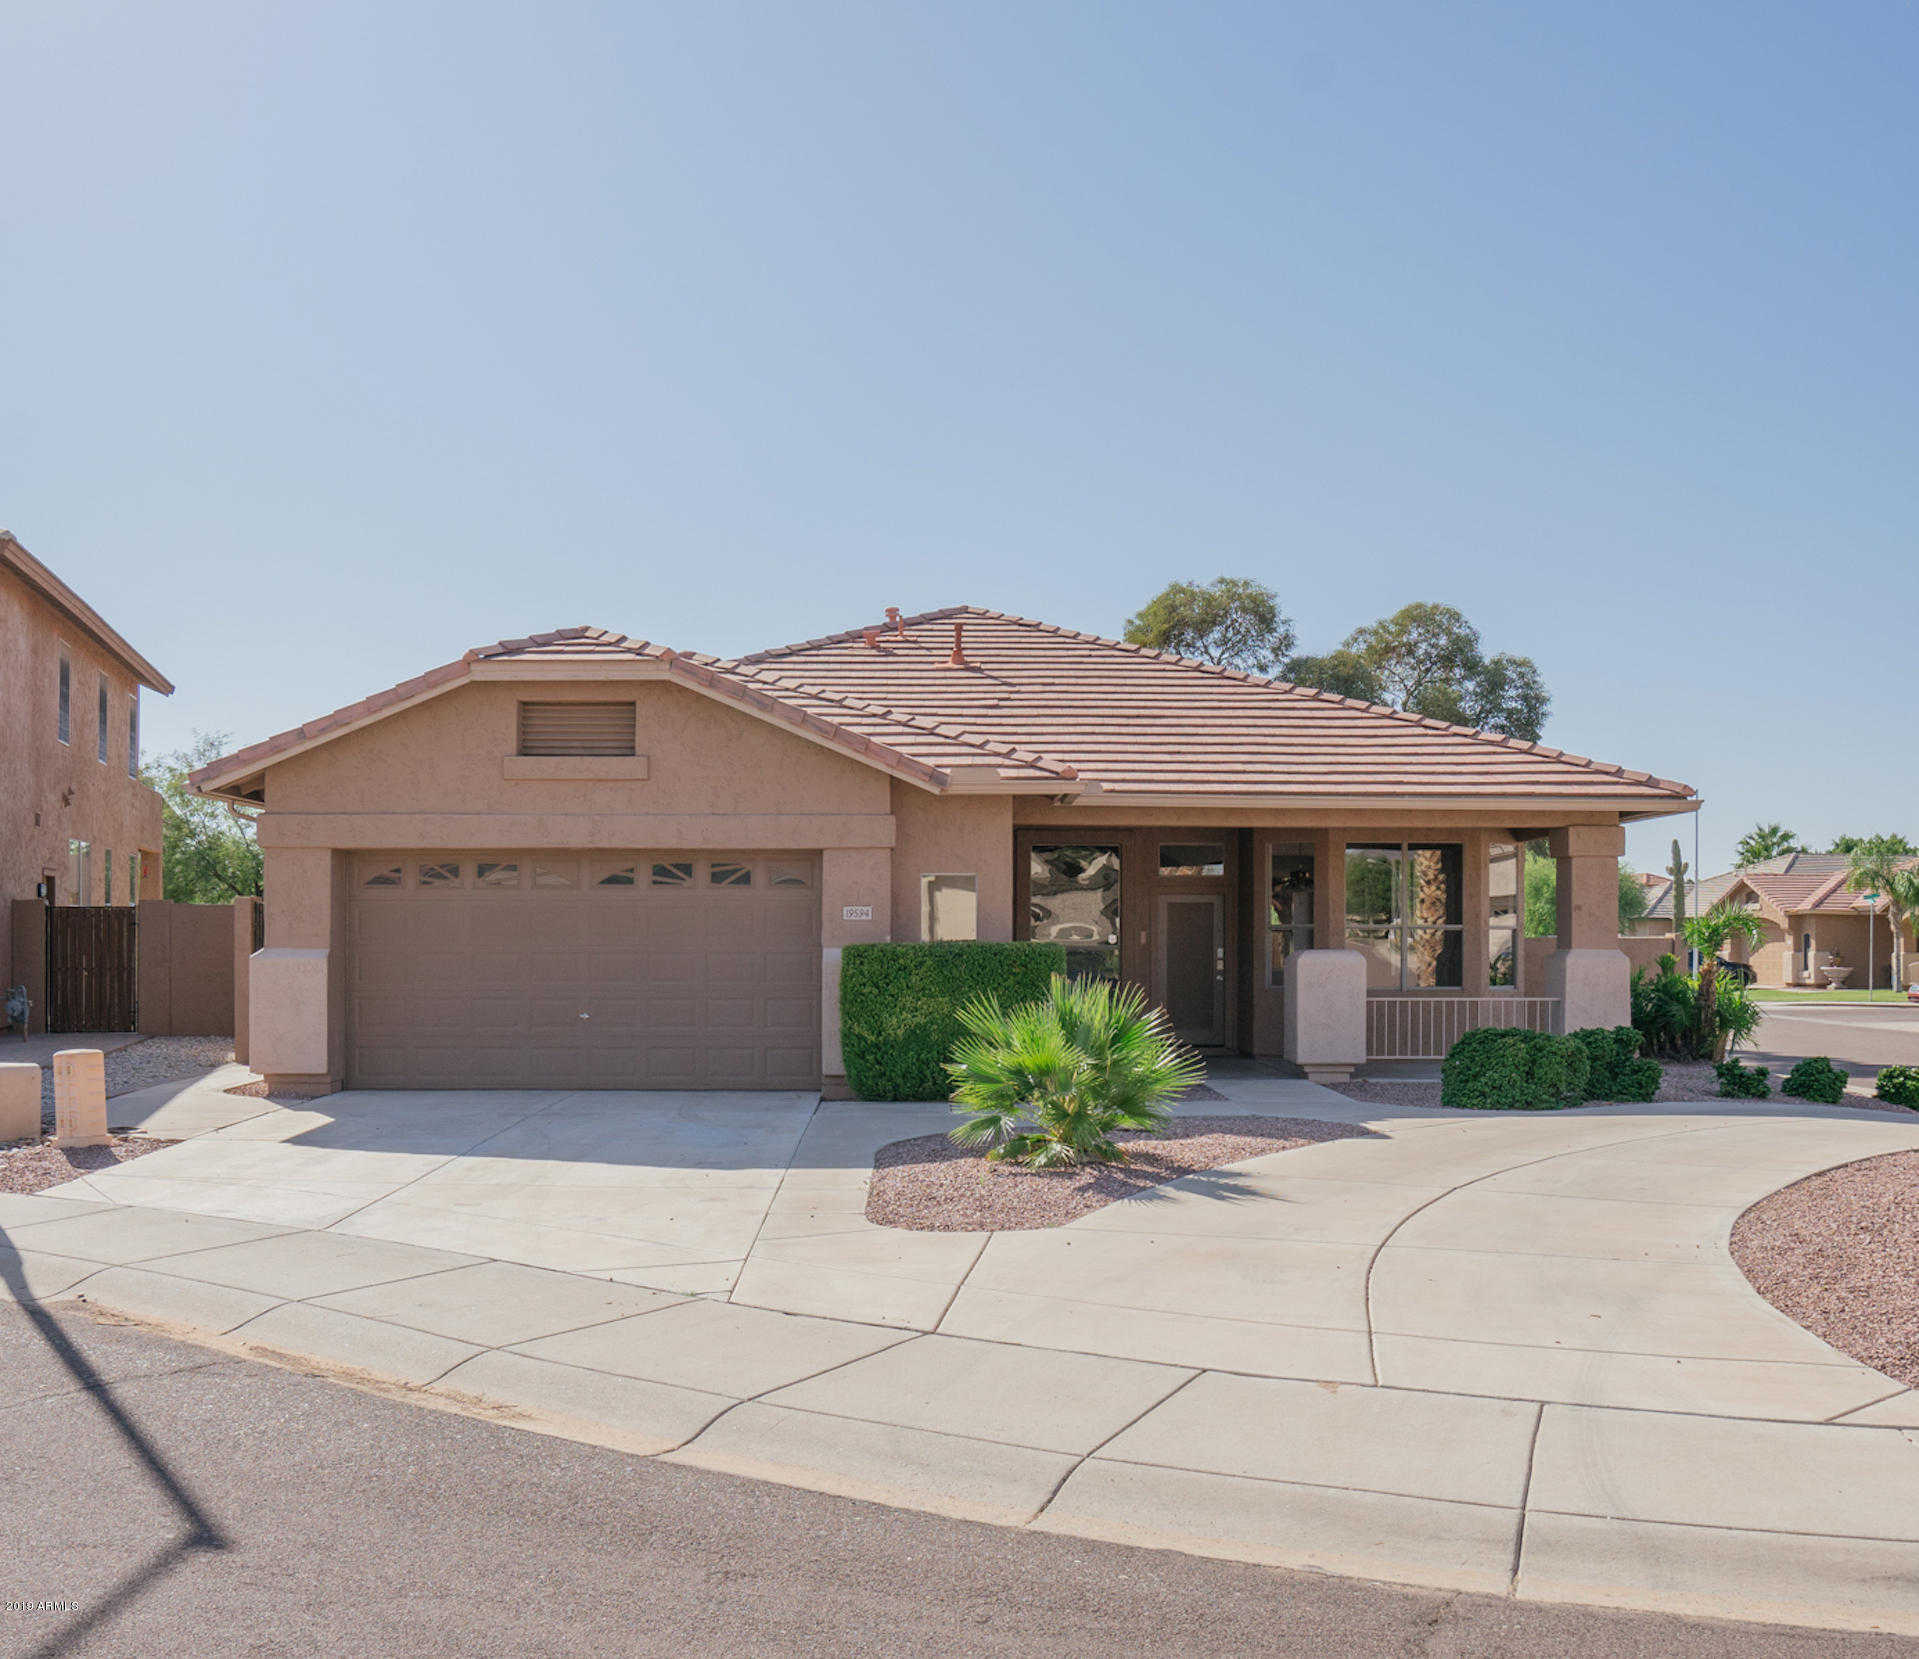 $332,000 - 4Br/2Ba - Home for Sale in Highlands At Arrowhead Ranch 1, Glendale